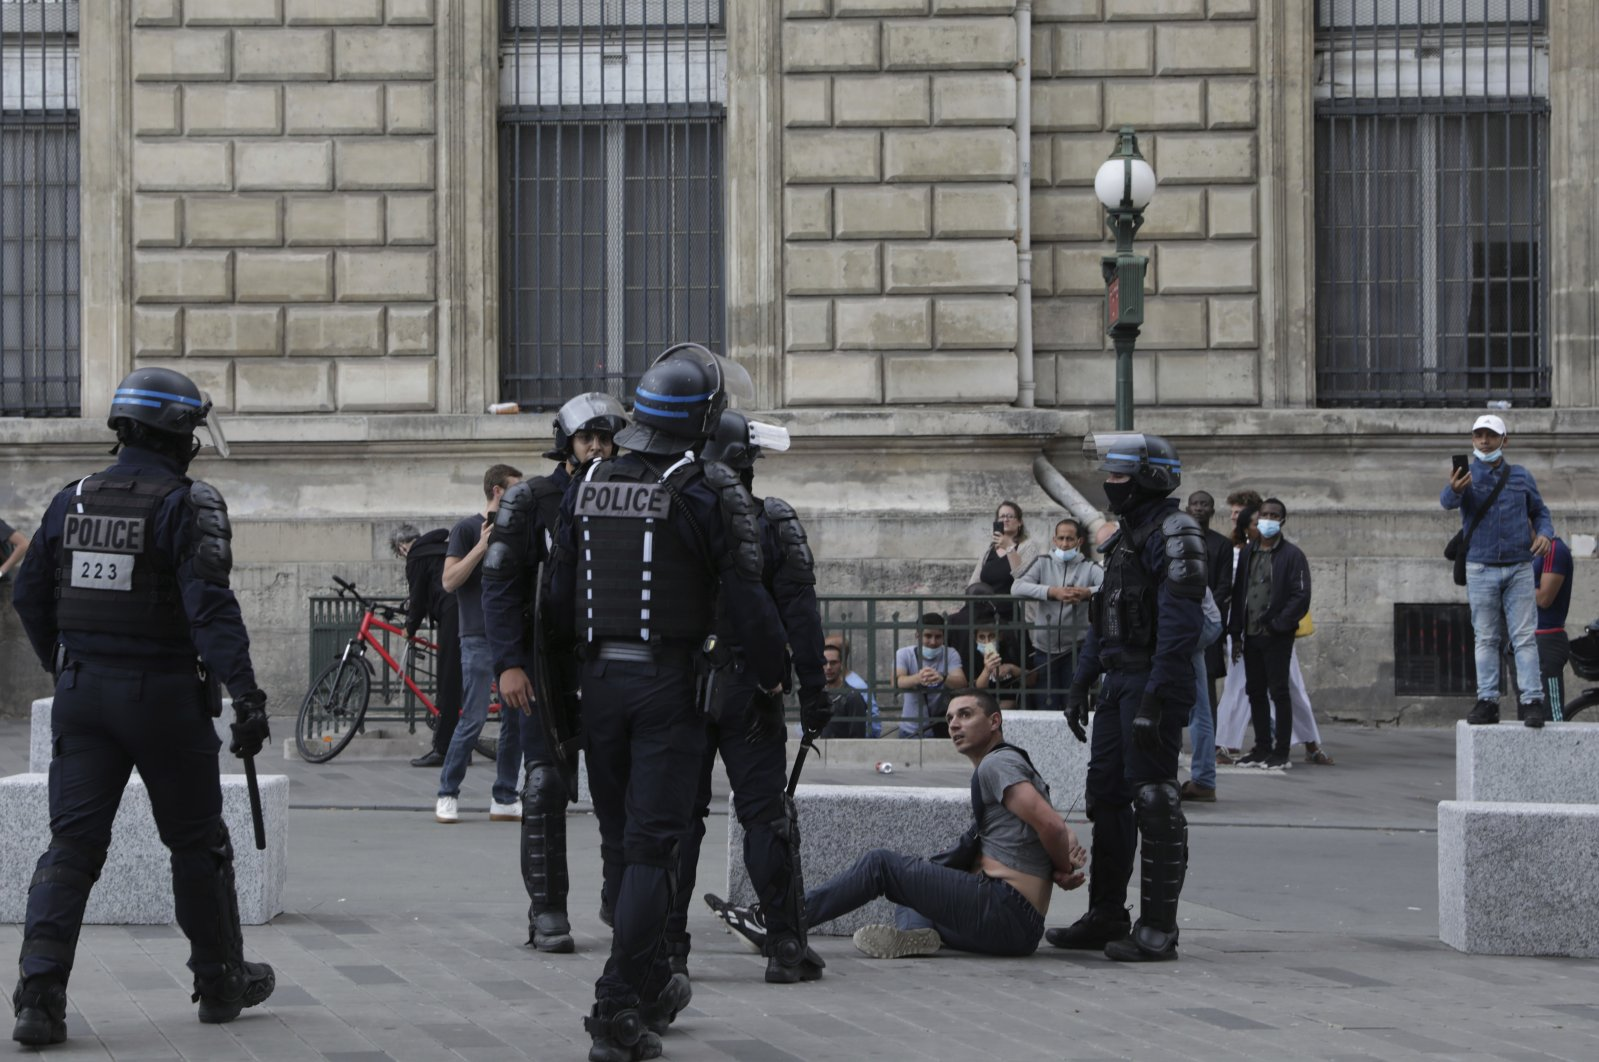 Police detain a protestor during a demonstration in Paris, France, July 31, 2021. (AP Photo)